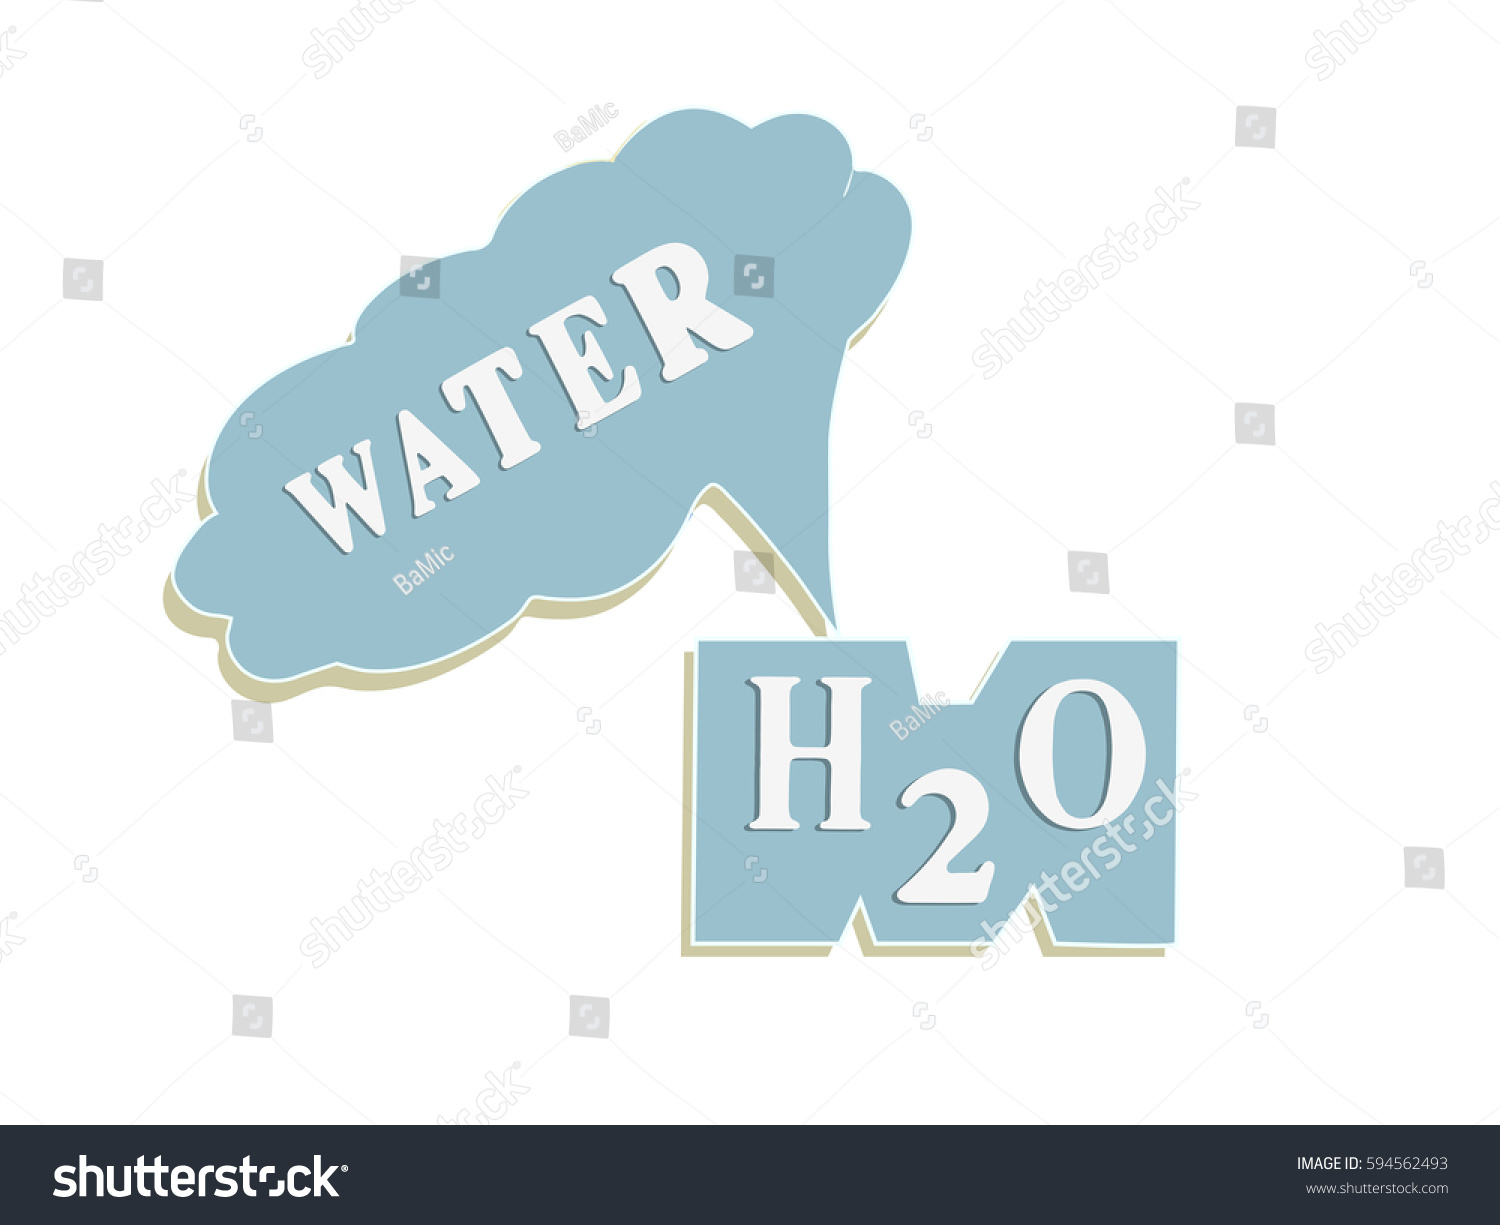 Water chemical formula h2o digital drawing stock illustration water chemical formula h2o digital drawing buycottarizona Choice Image